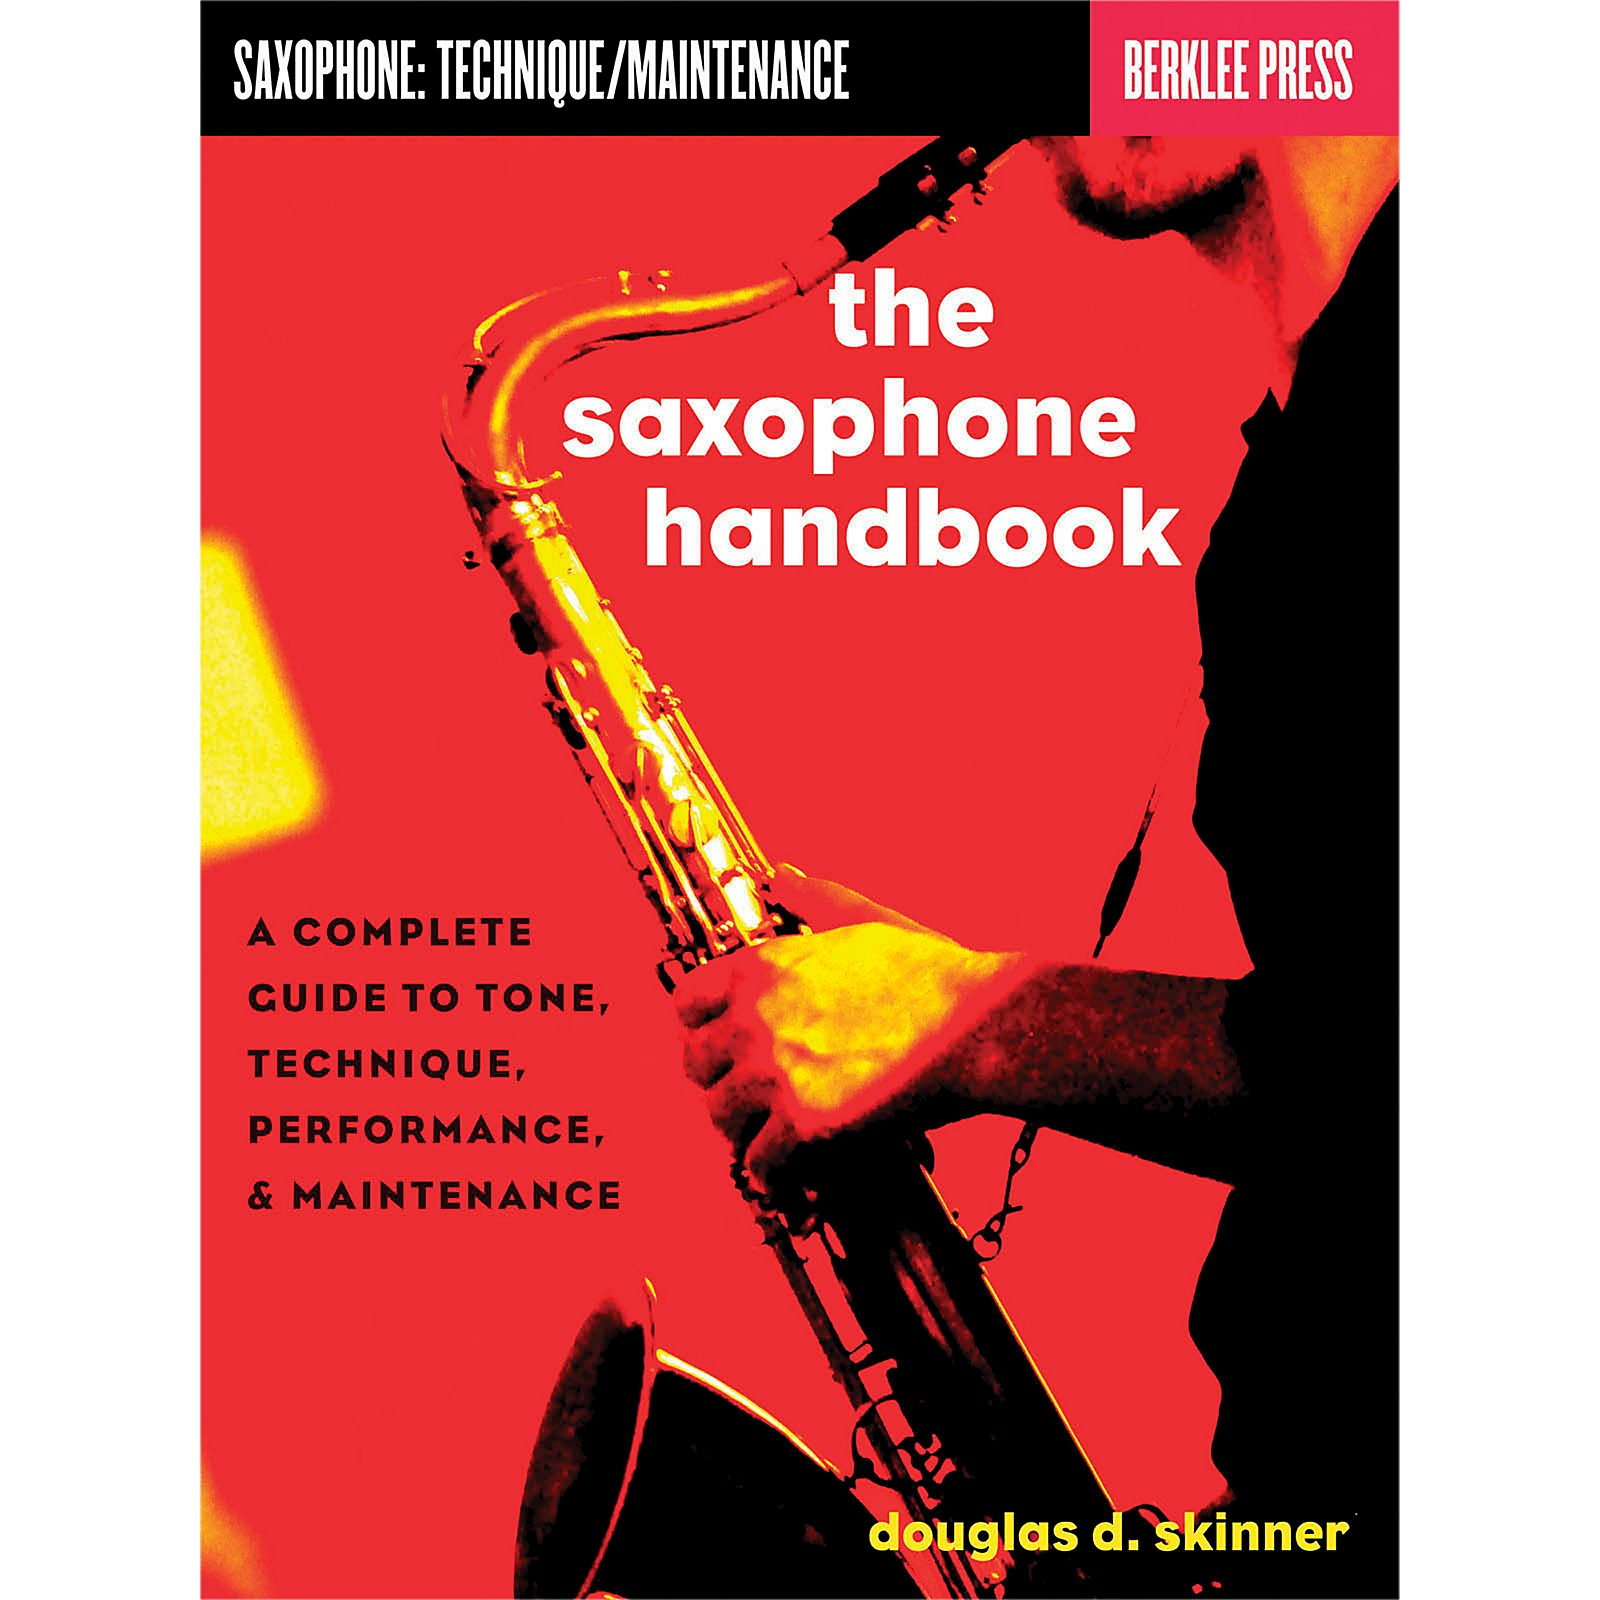 Hal Leonard The Saxophone Handbook - Complete Guide To Tone, Technique, Performance & Maintenance